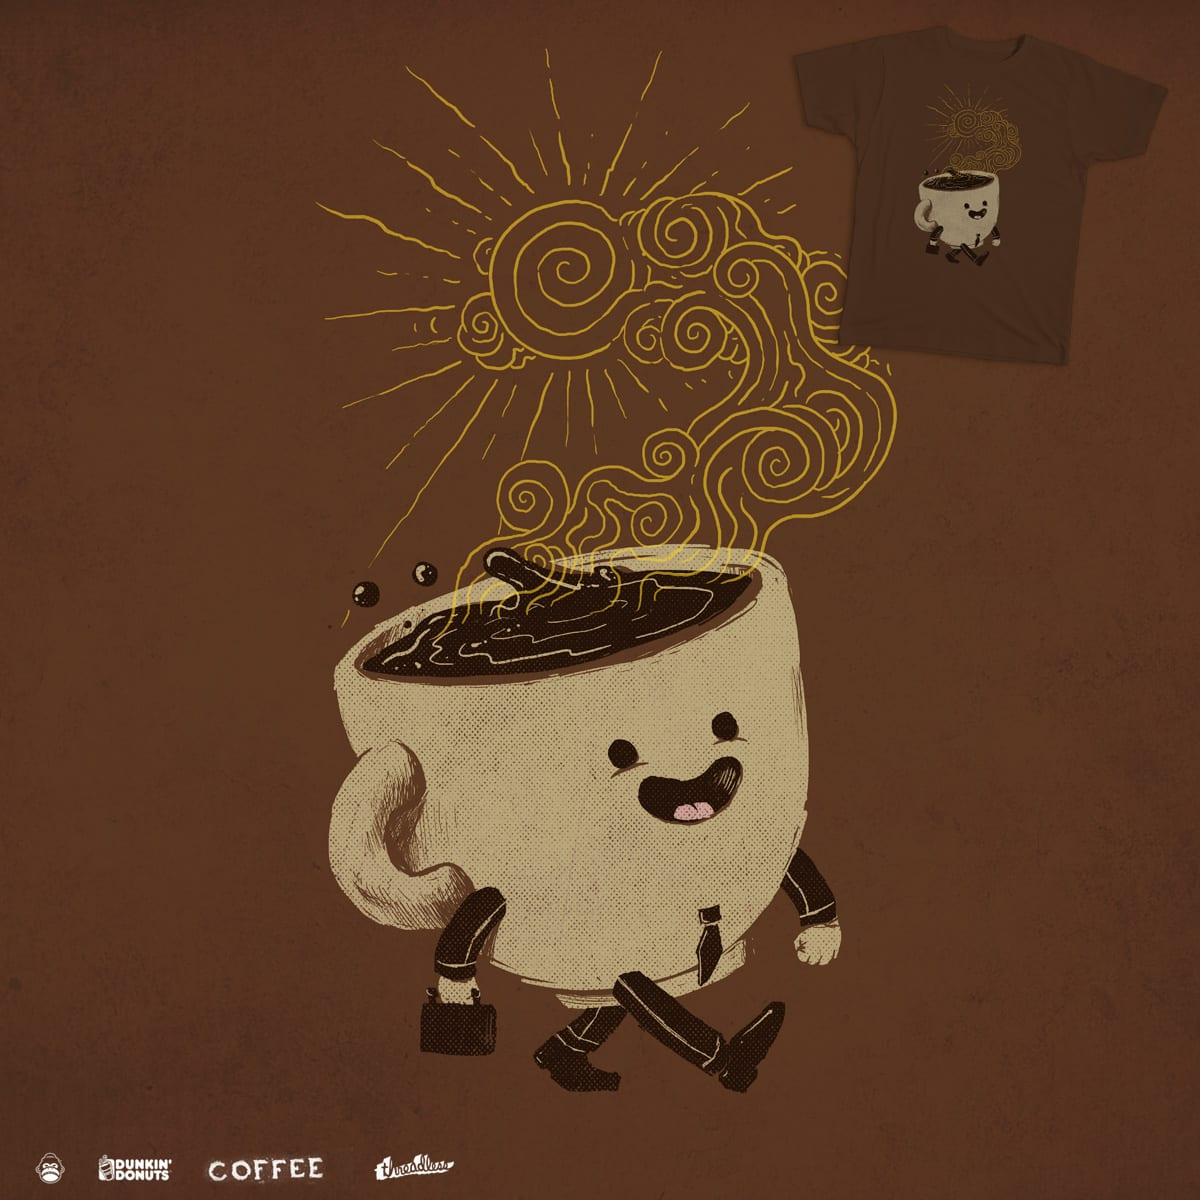 Morning Coffee by alexmdc on Threadless